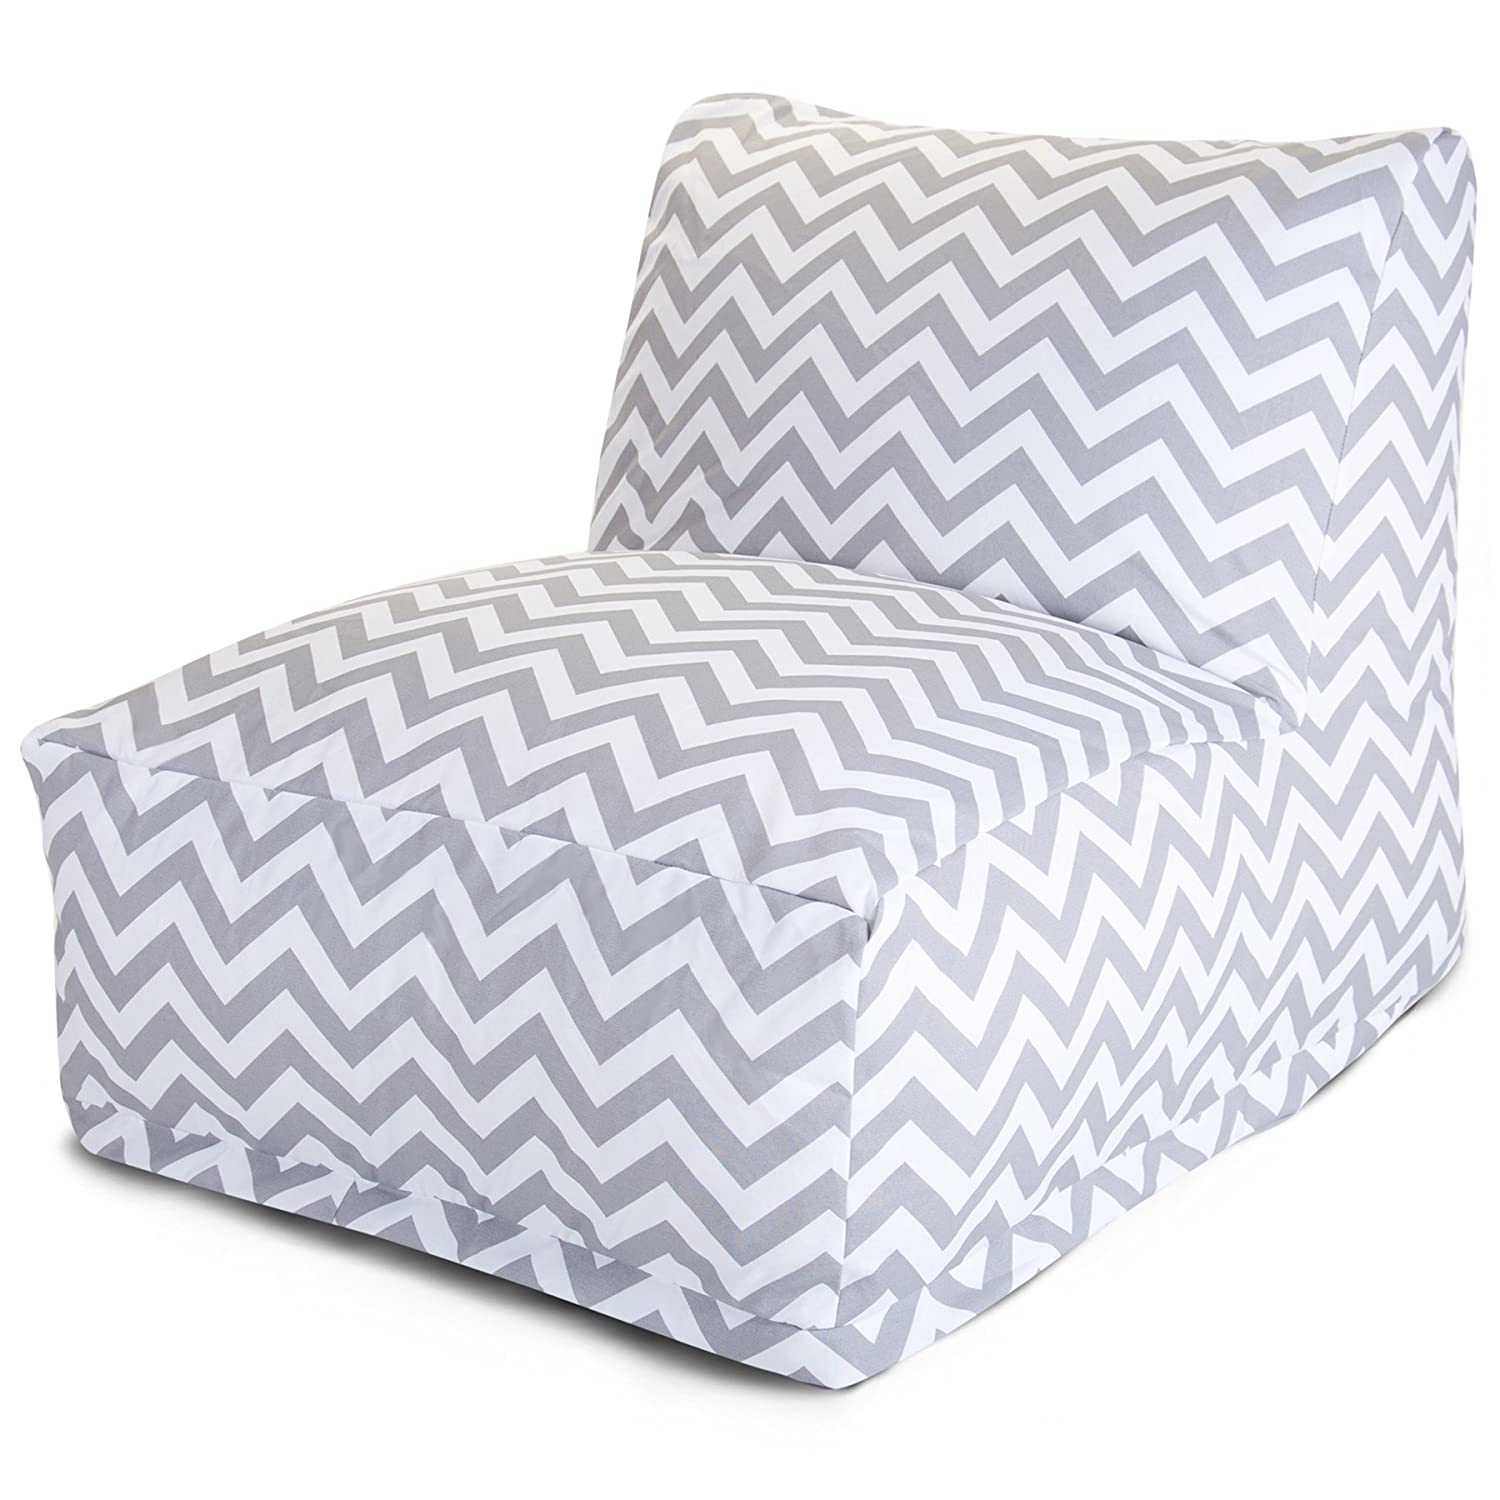 Amazon Majestic Home Goods Chevron Bean Bag Chair Lounger Gray Garden Outdoor